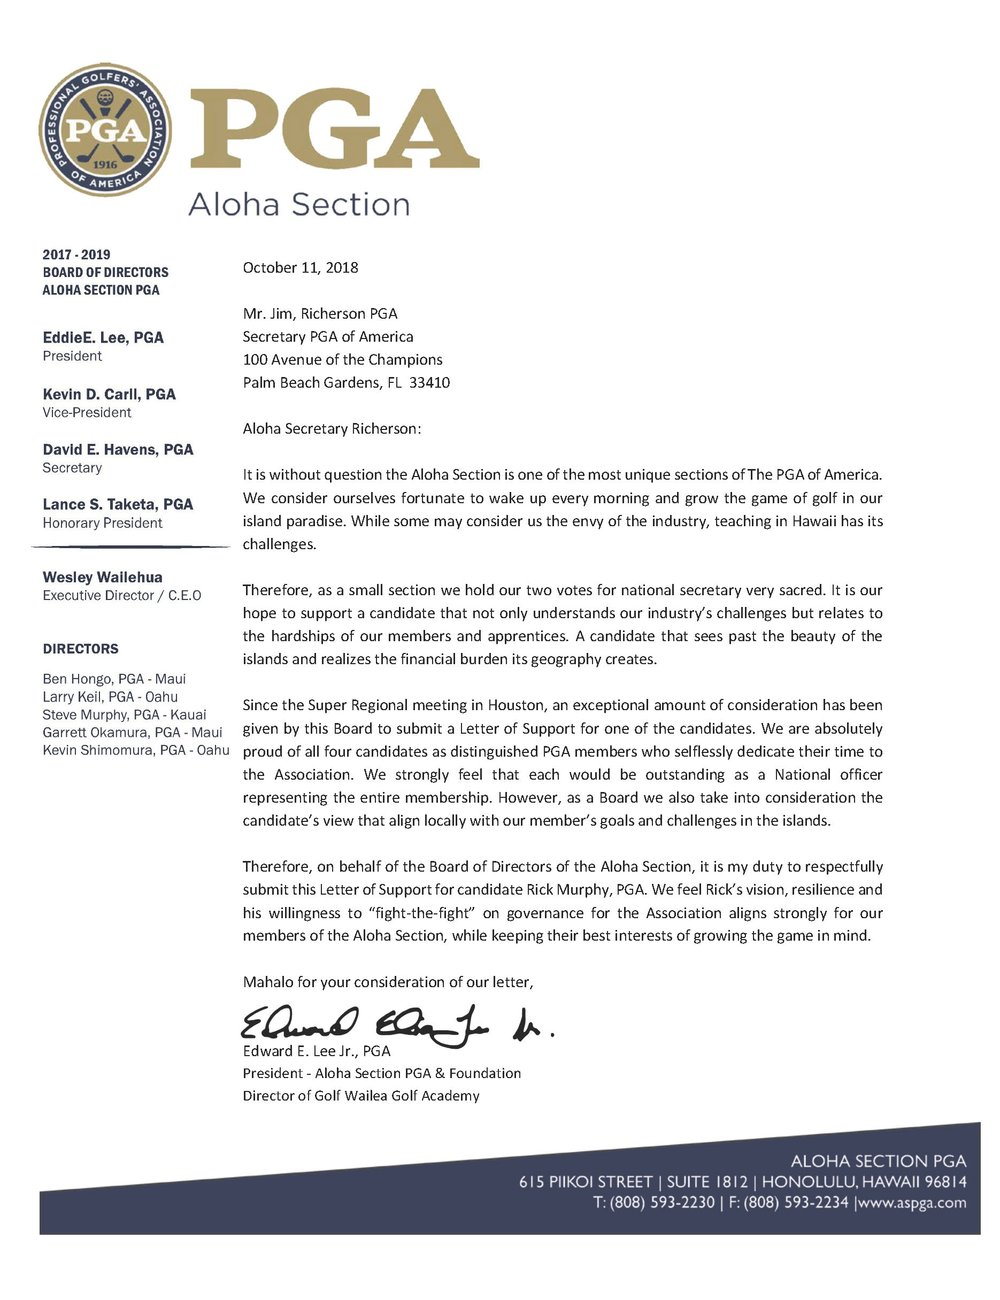 180926 rick murphy letter of supportjpg